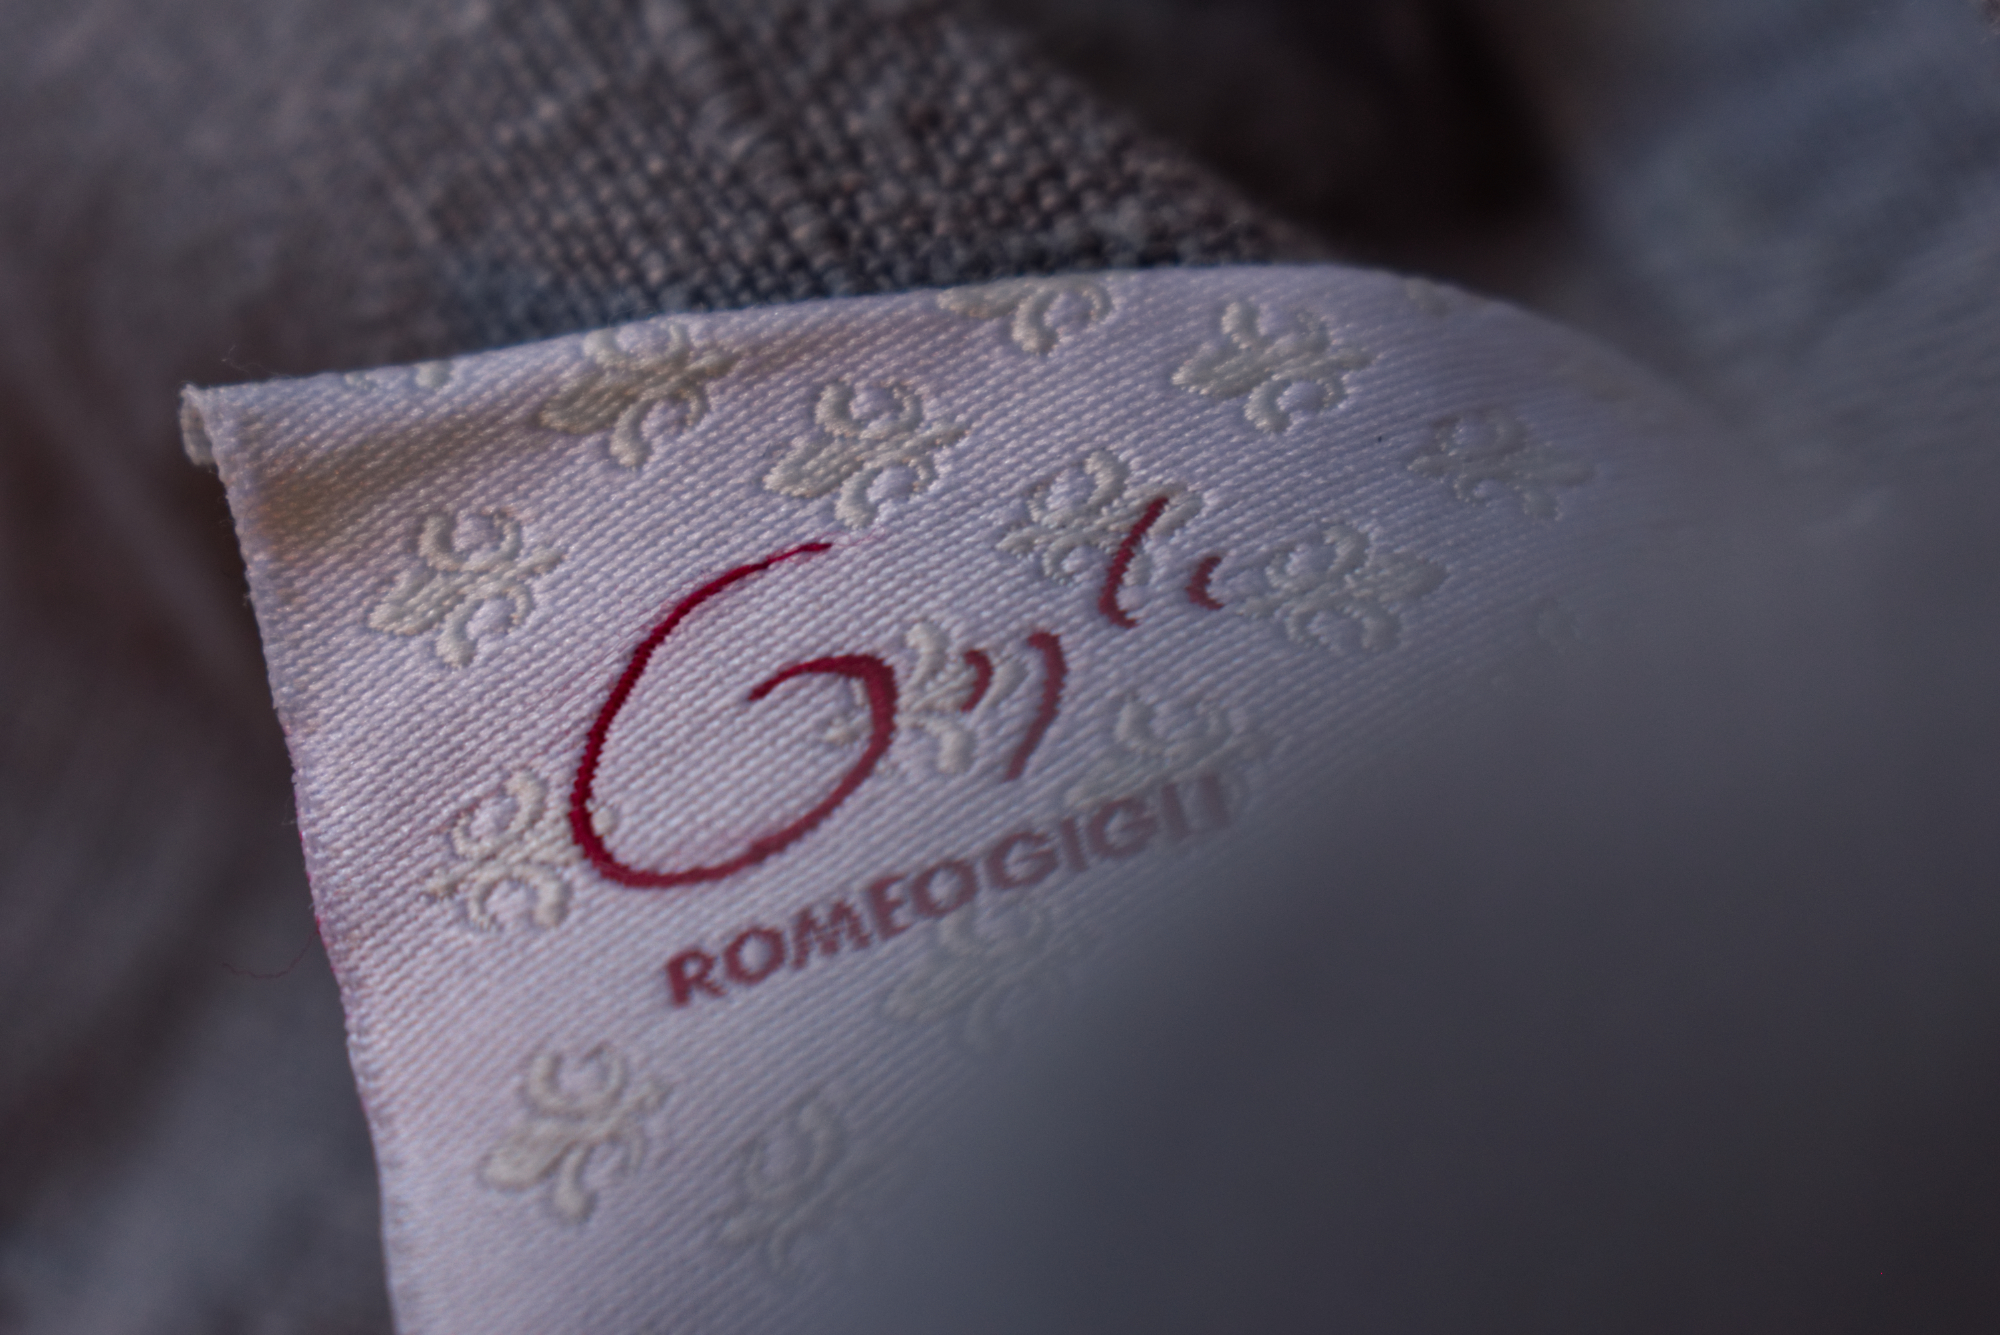 Photo of a label on a Romeo Gigli men's jacket made of linen to illustrate an article about Romeo Gigli clothing